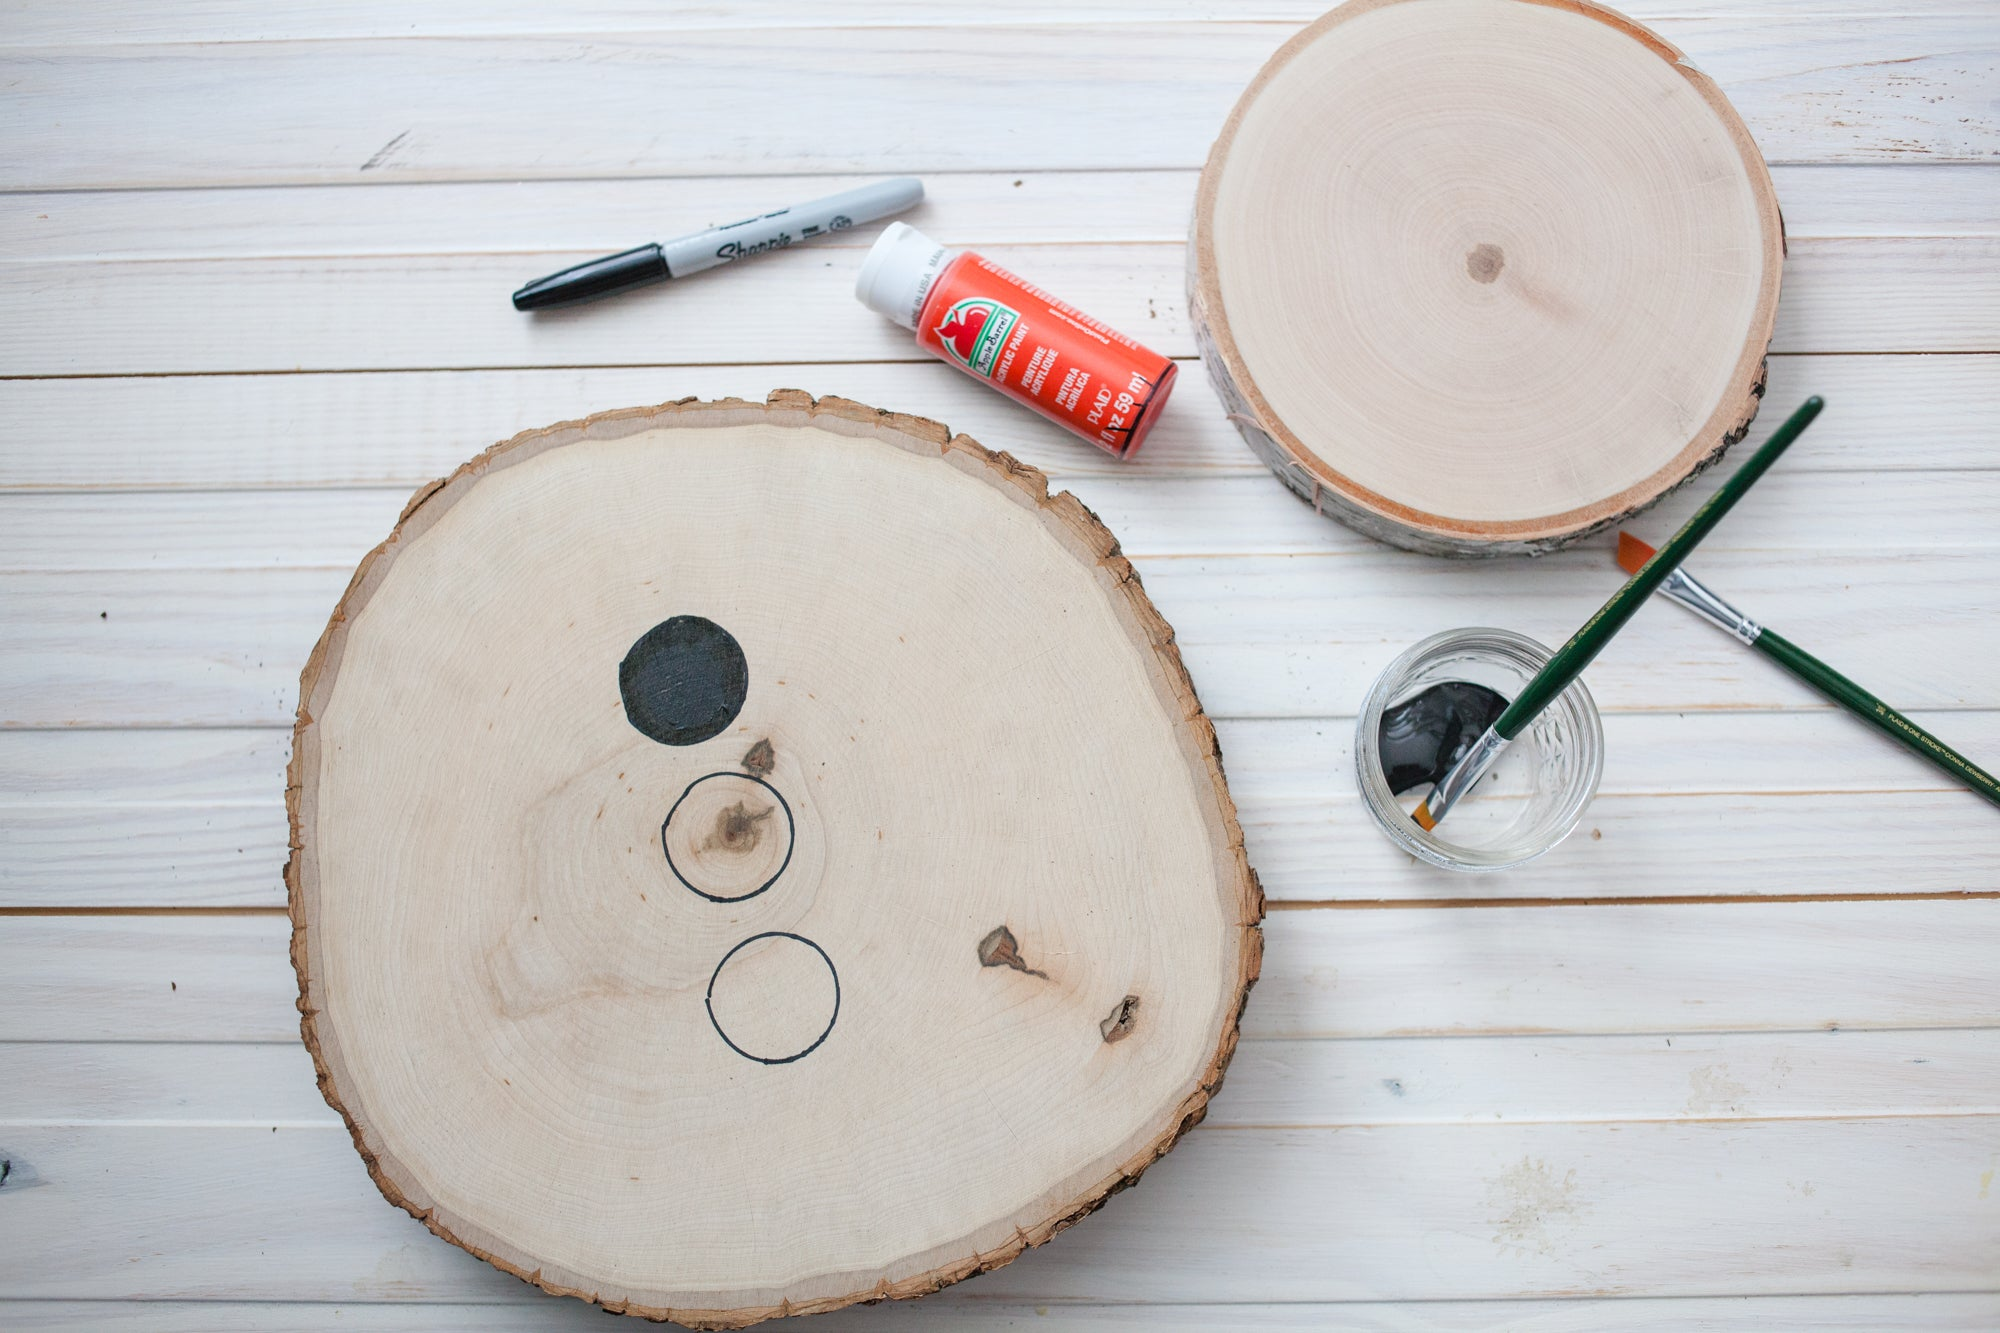 How to make a DIY snowman with wood rounds